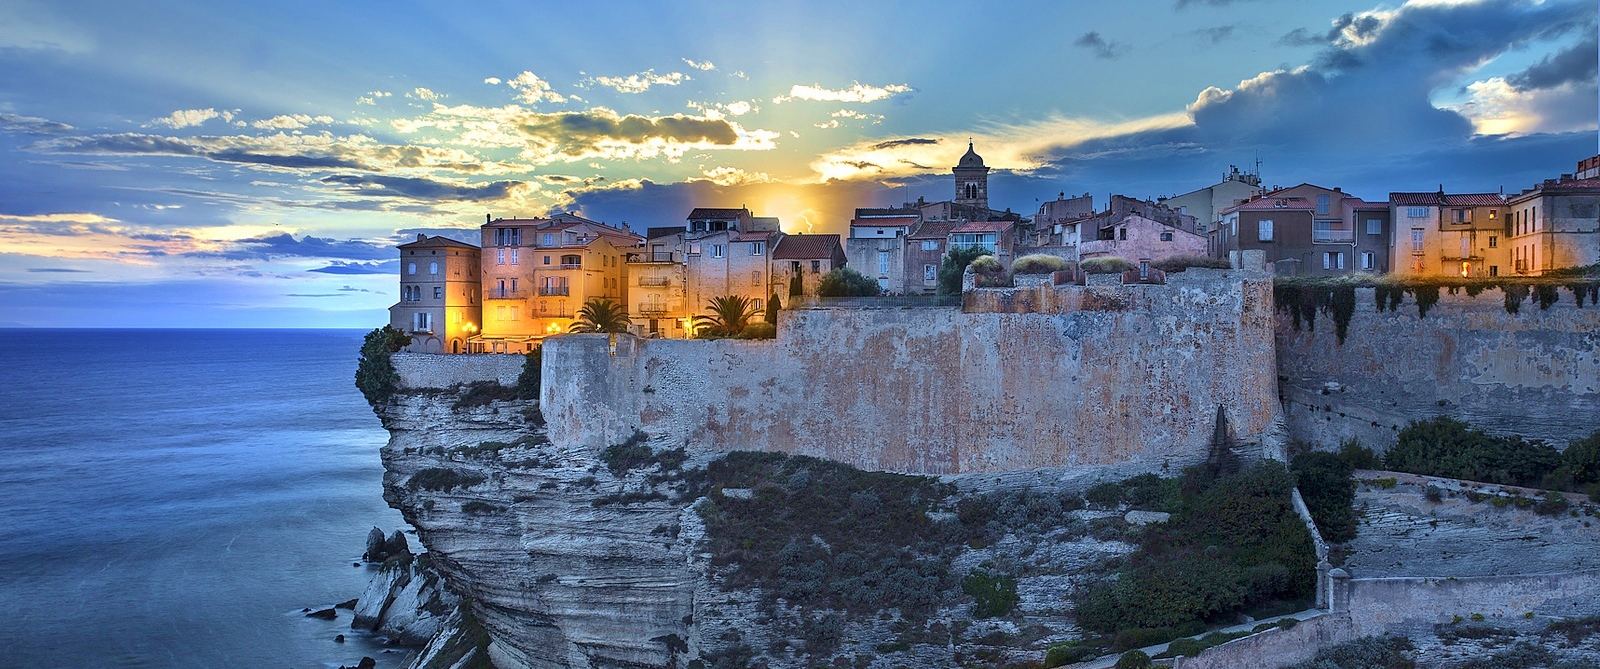 Sunset at the old town of Bonifacio over the cliff (Corsica)